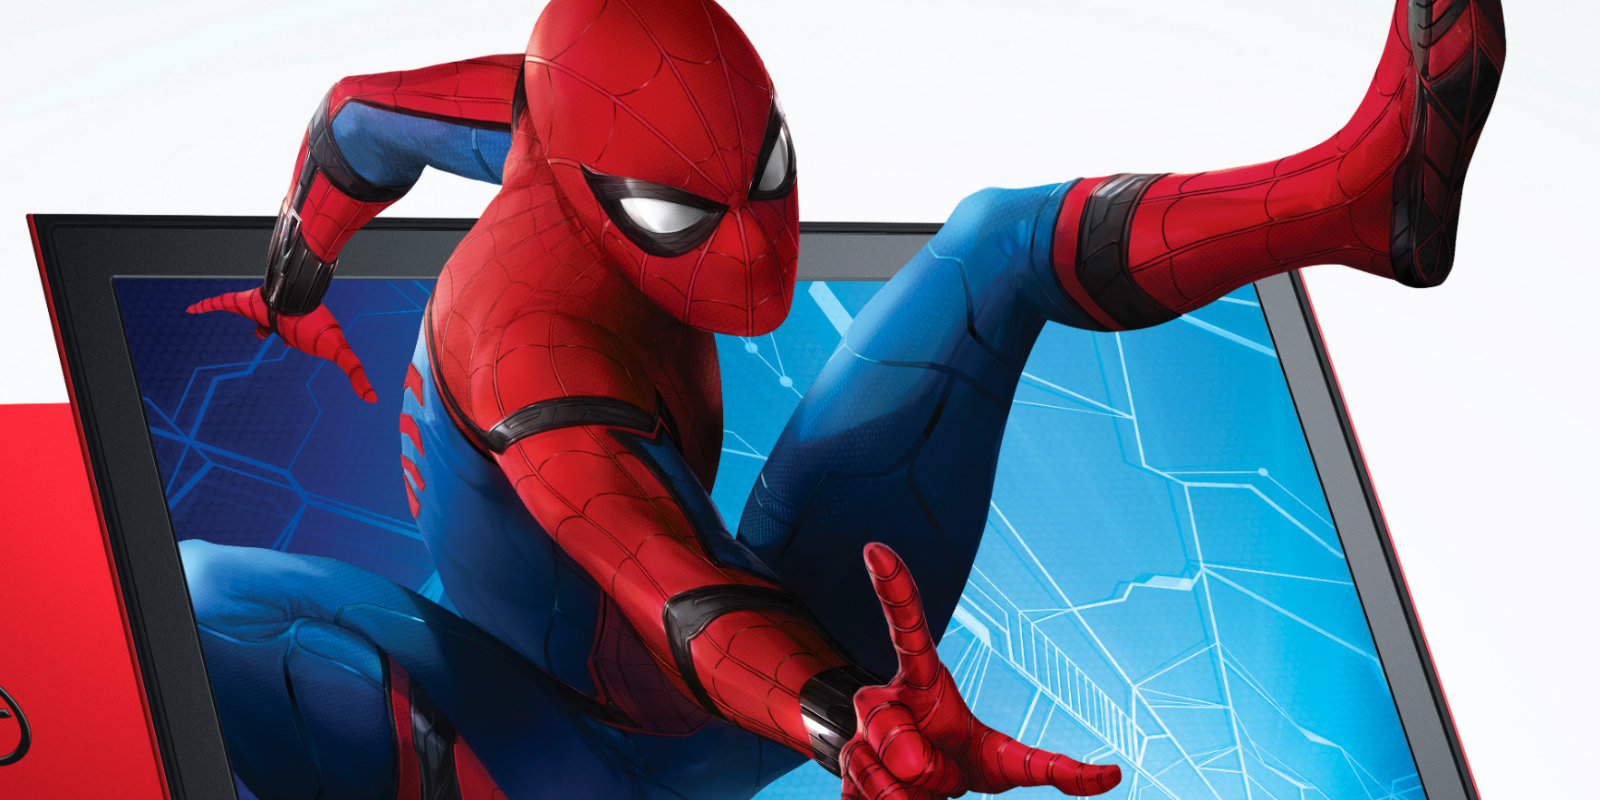 Spiderman Homecoming Free 123movies: TV And Movie News Spider-Man: Homecoming Promo Images